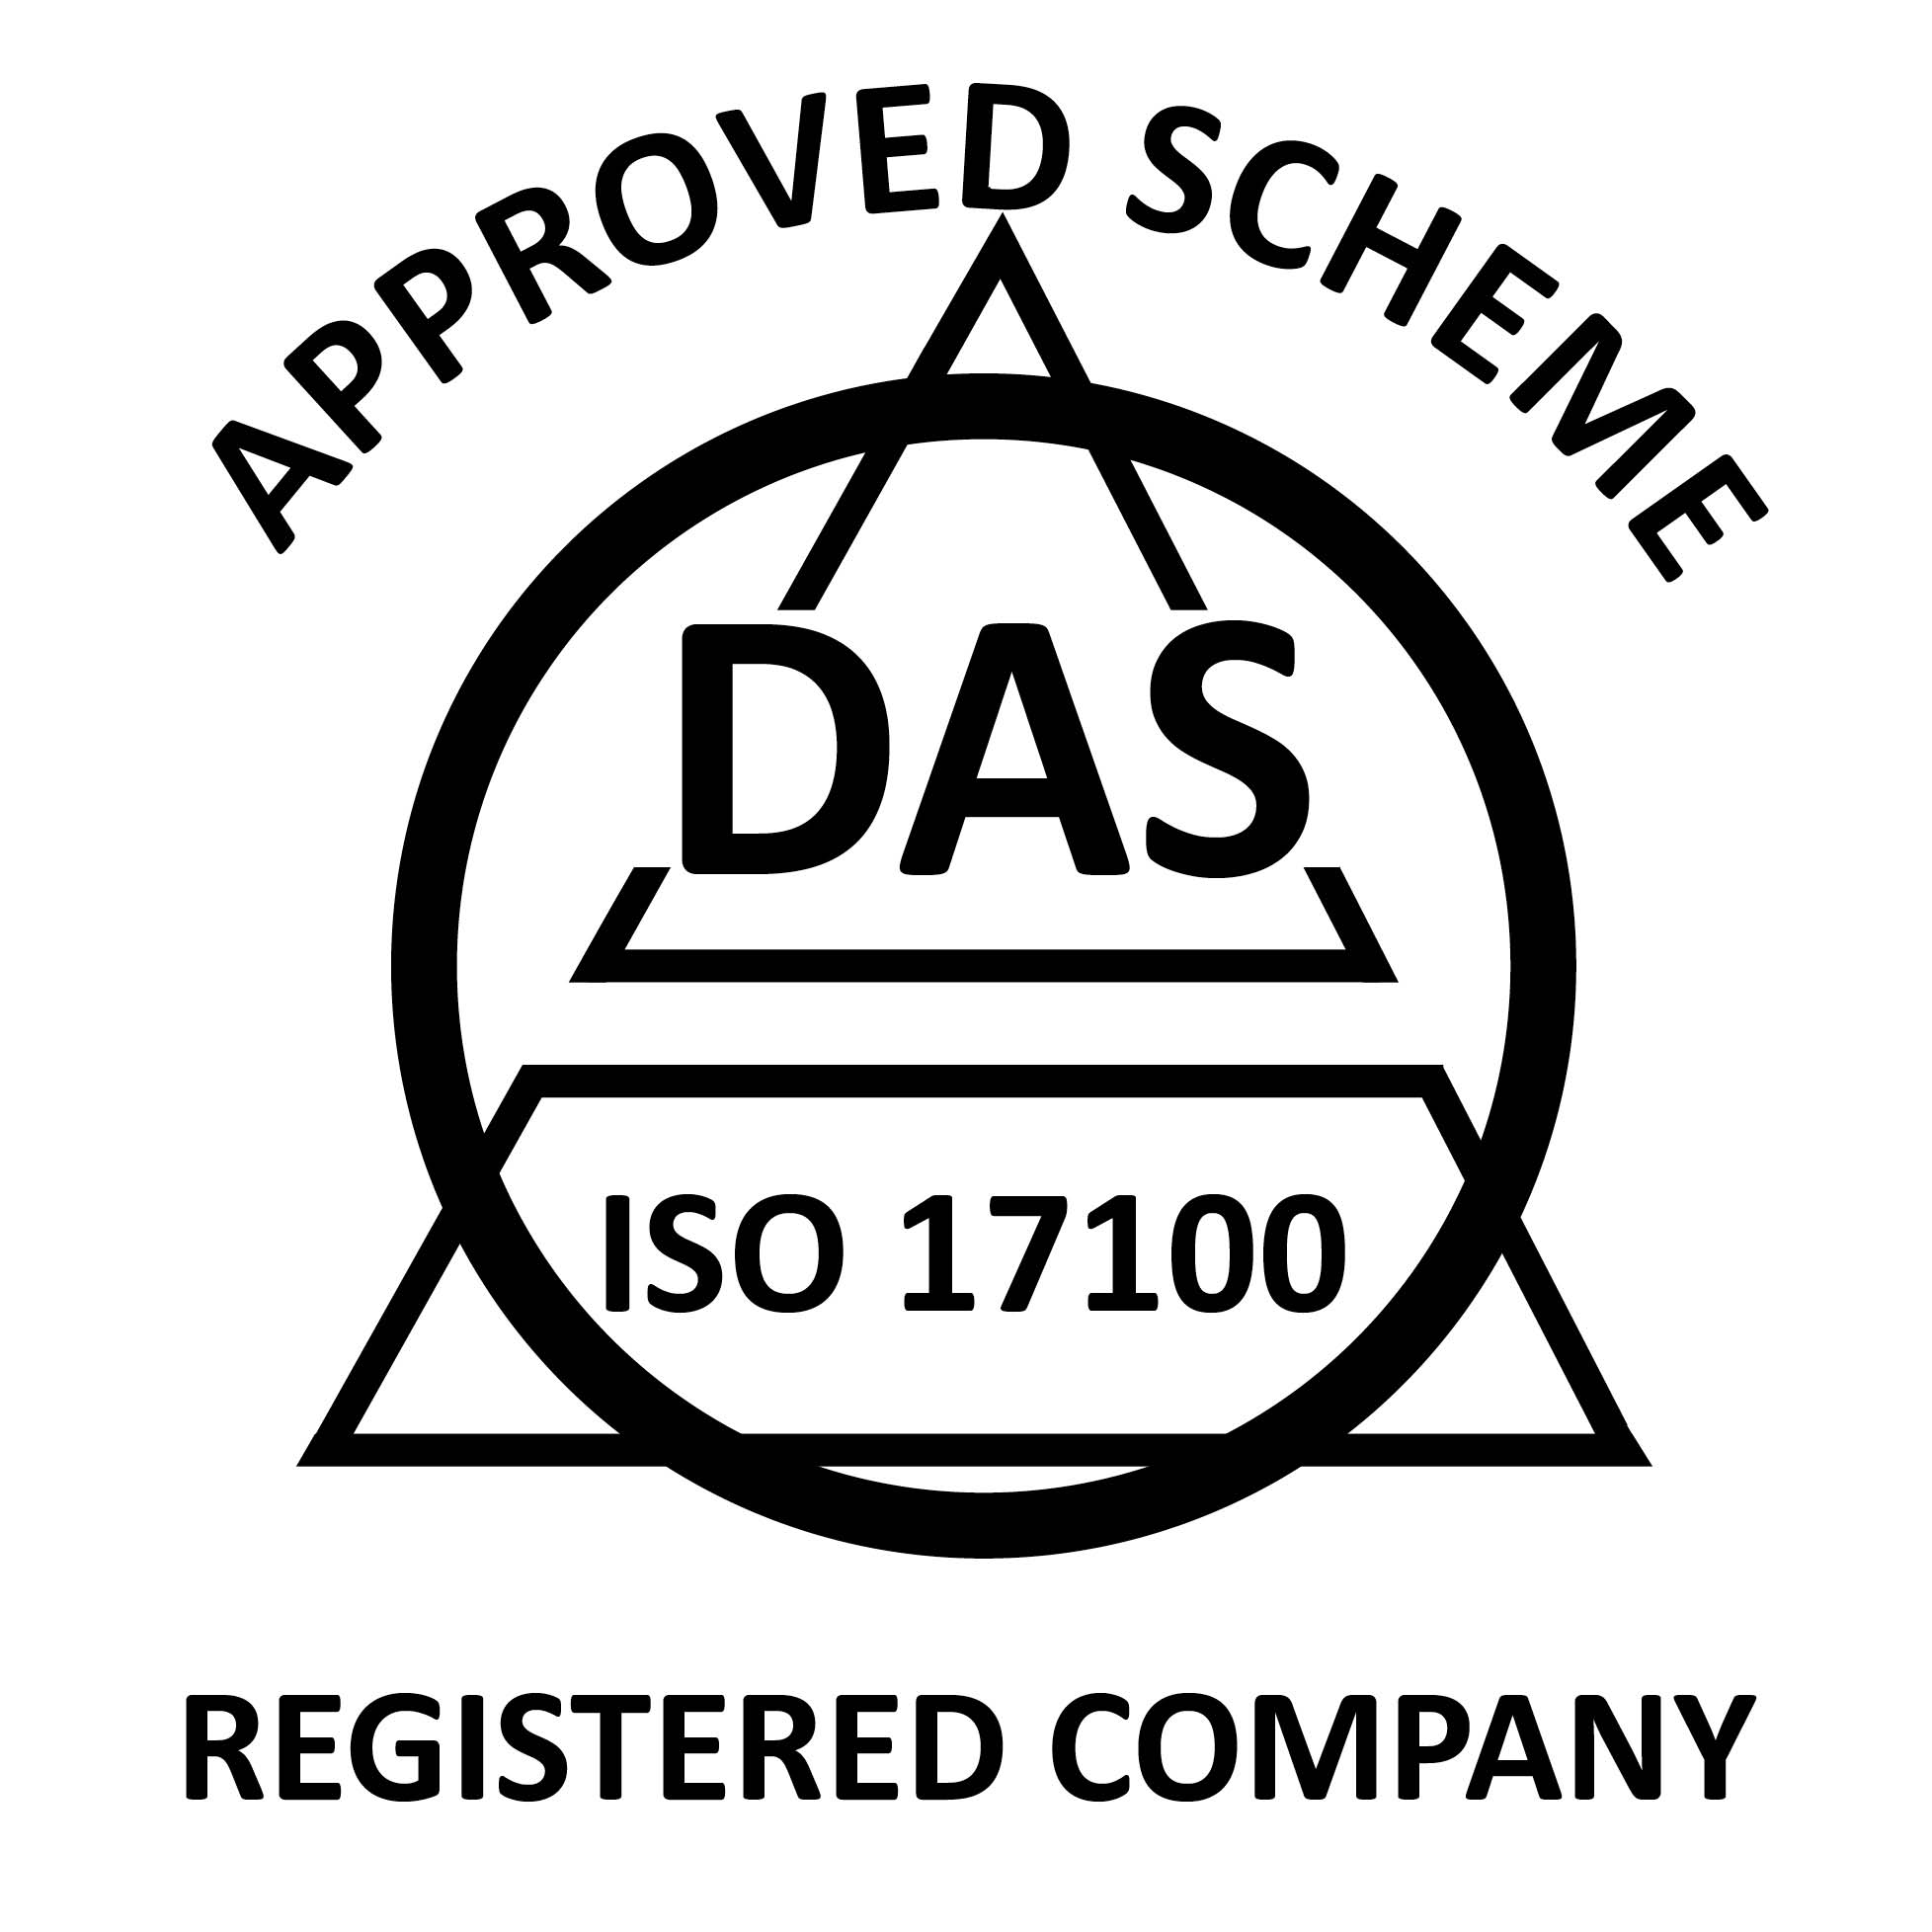 ISO17100 accreditation